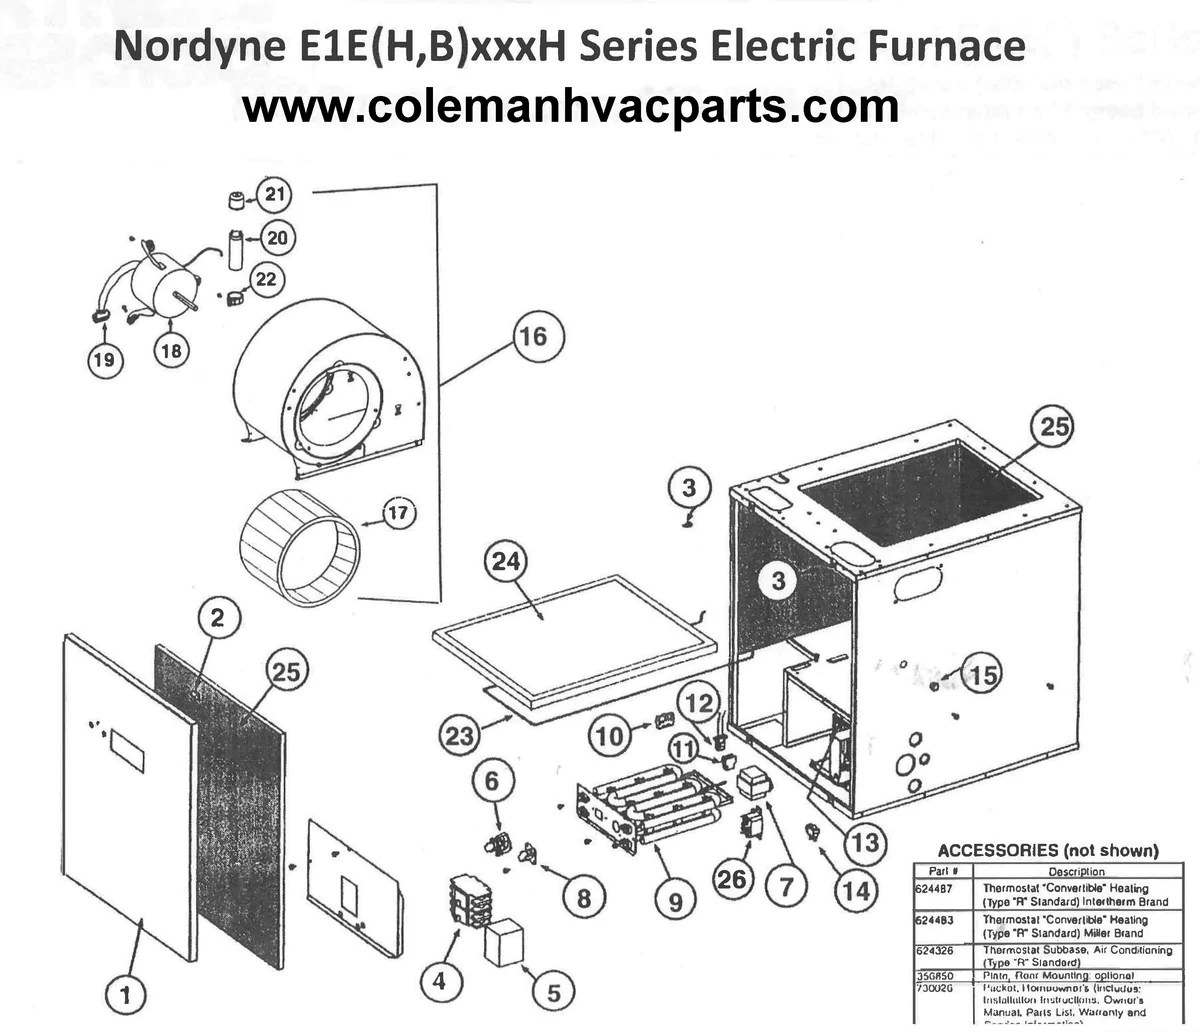 small resolution of ruud furnace parts diagram wiring diagram expert york furnace parts diagram